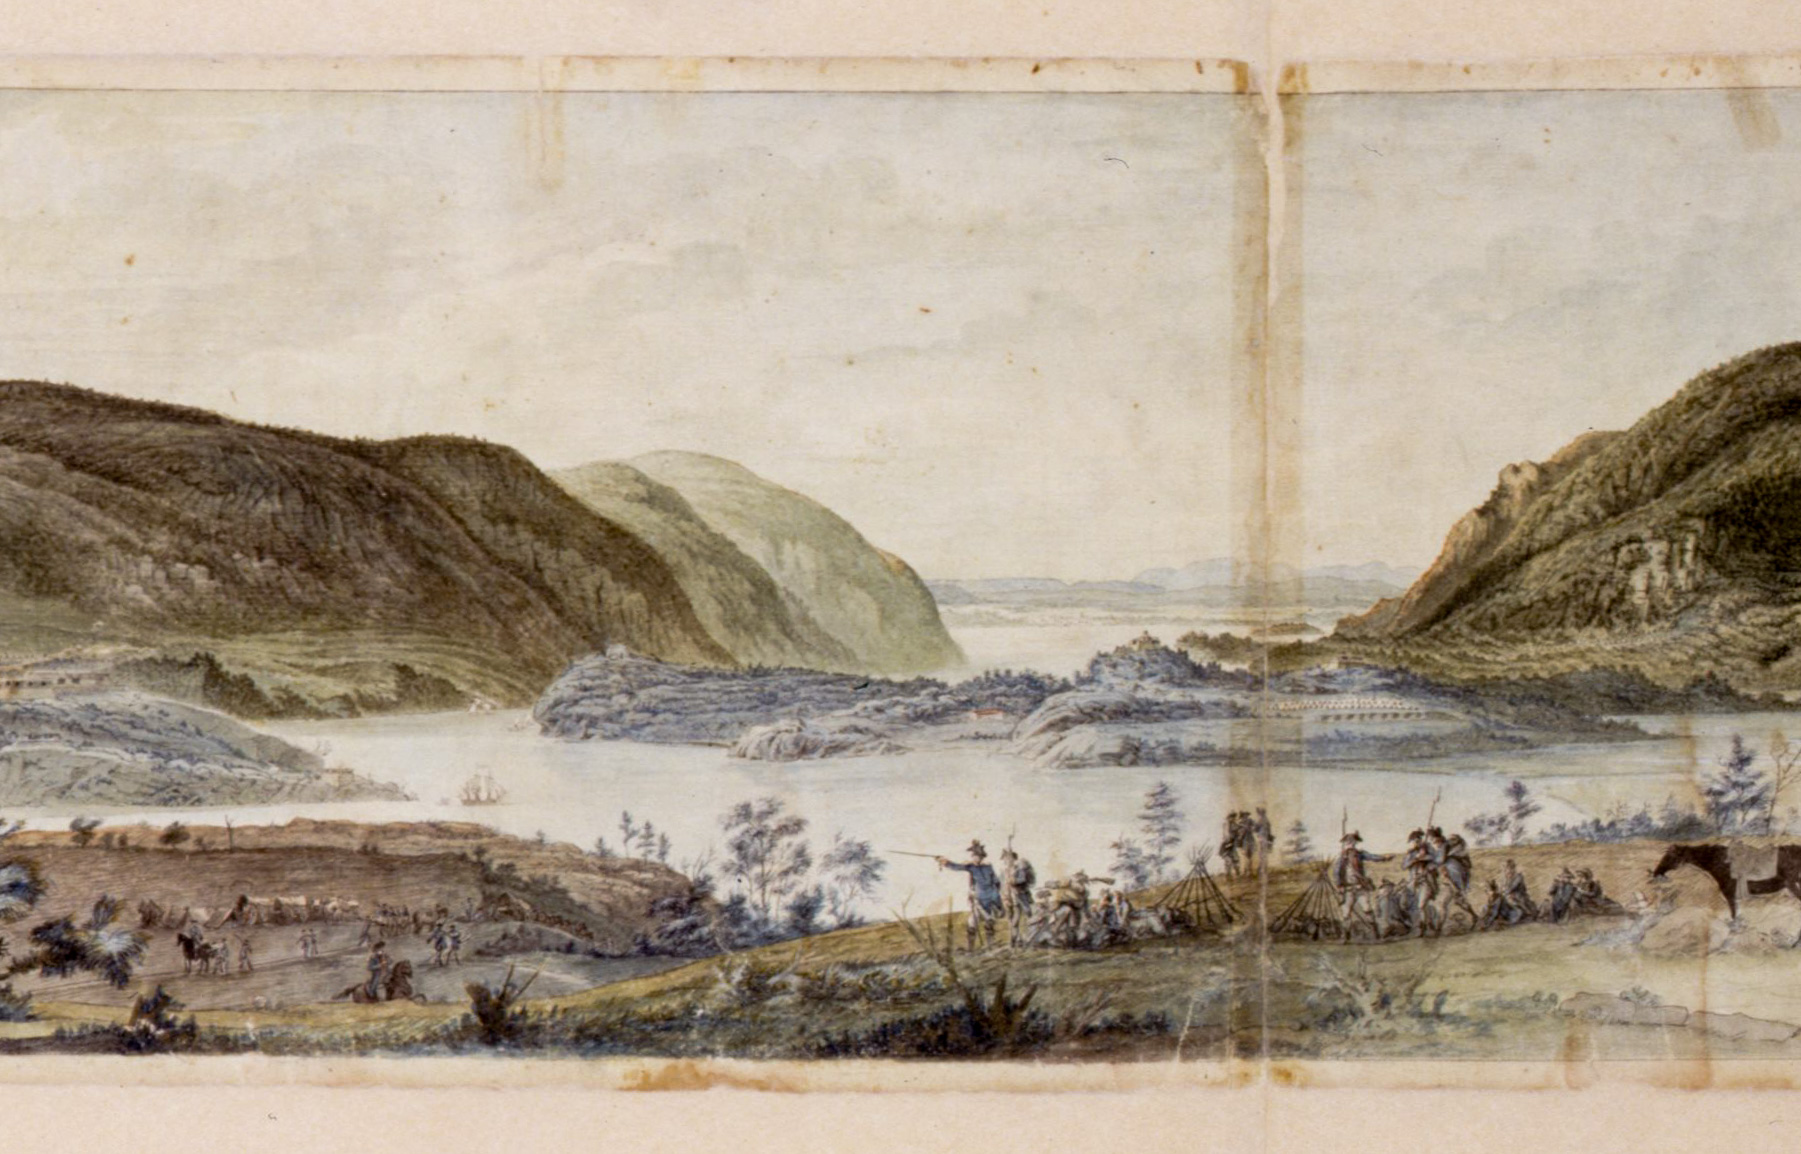 Panoramic View of West Point by L'Enfant 1778